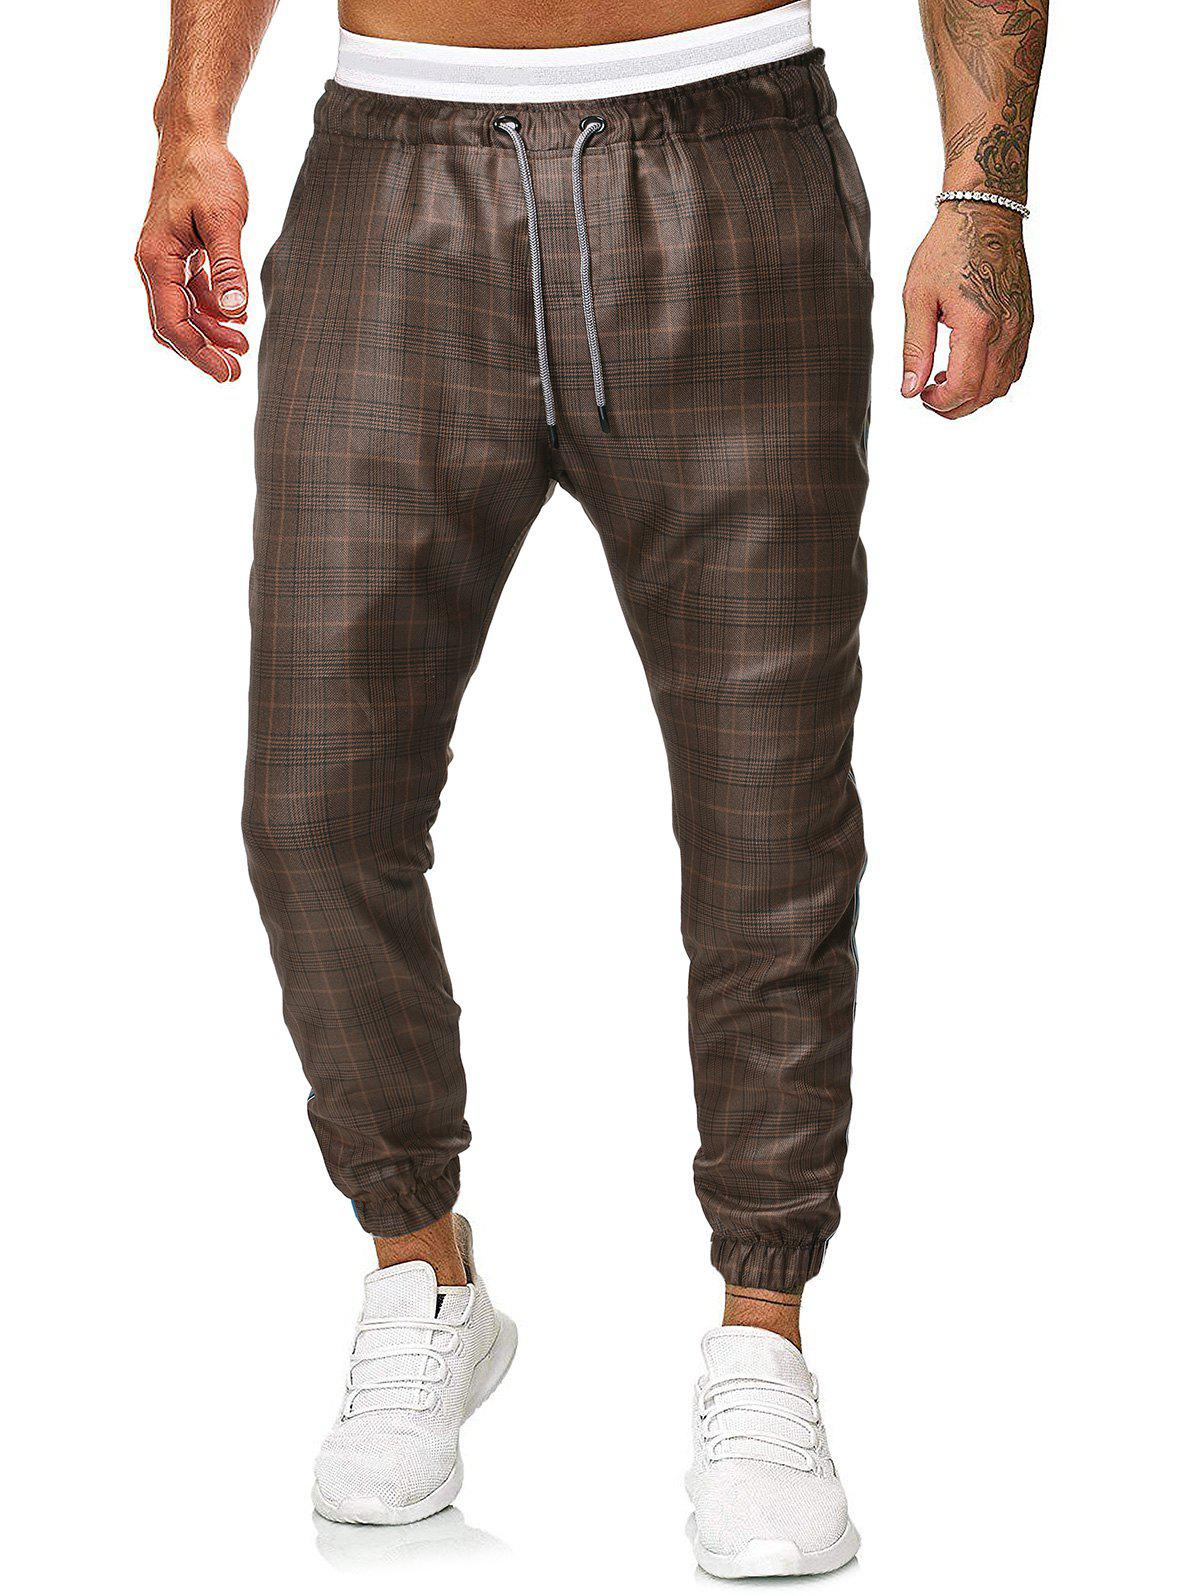 Pantalon de Jogging Motif à Carreaux à Cordon - Café 2XL